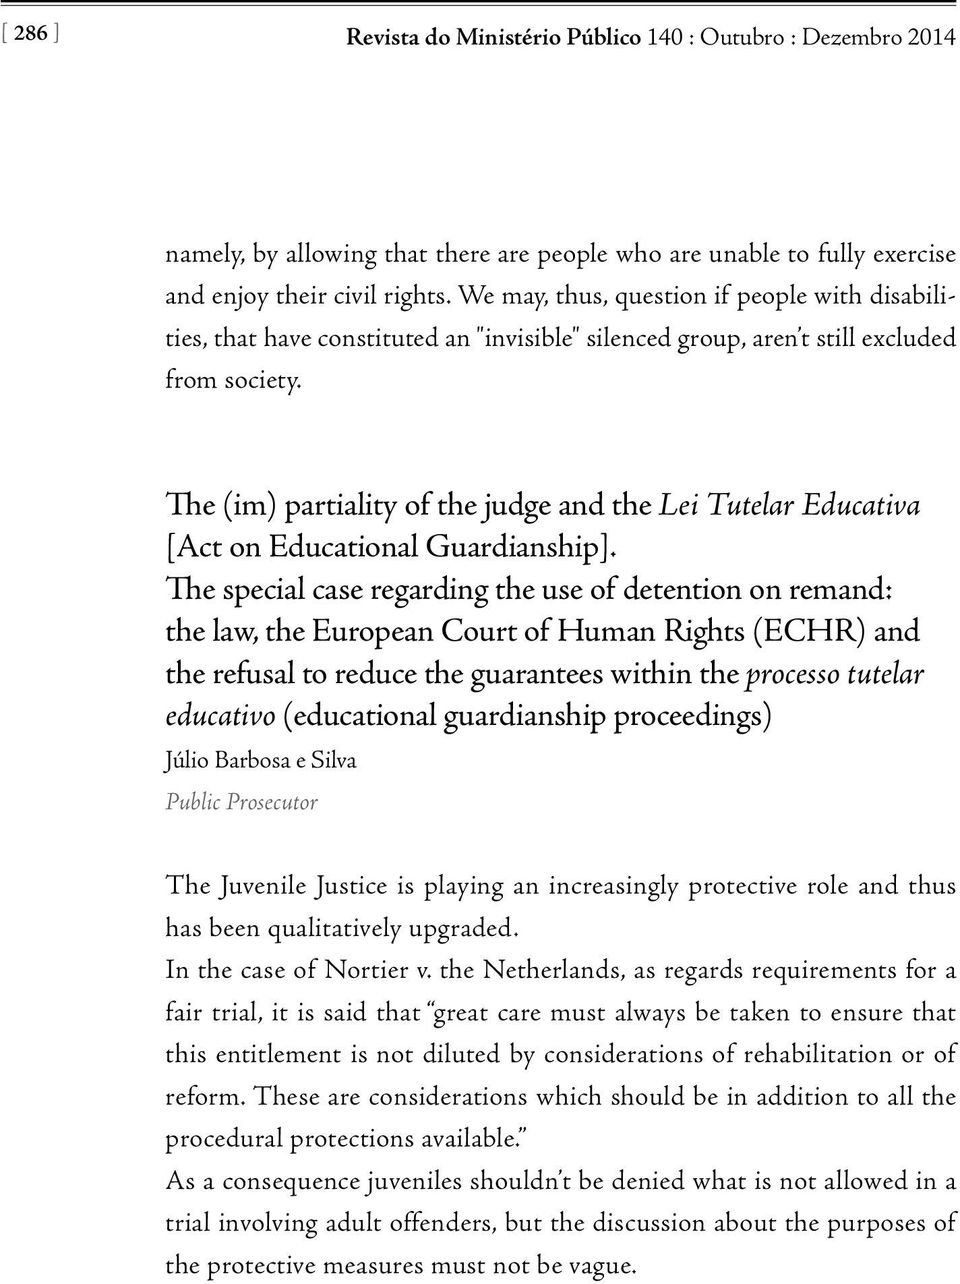 The (im) partiality of the judge and the Lei Tutelar Educativa [Act on Educational Guardianship].